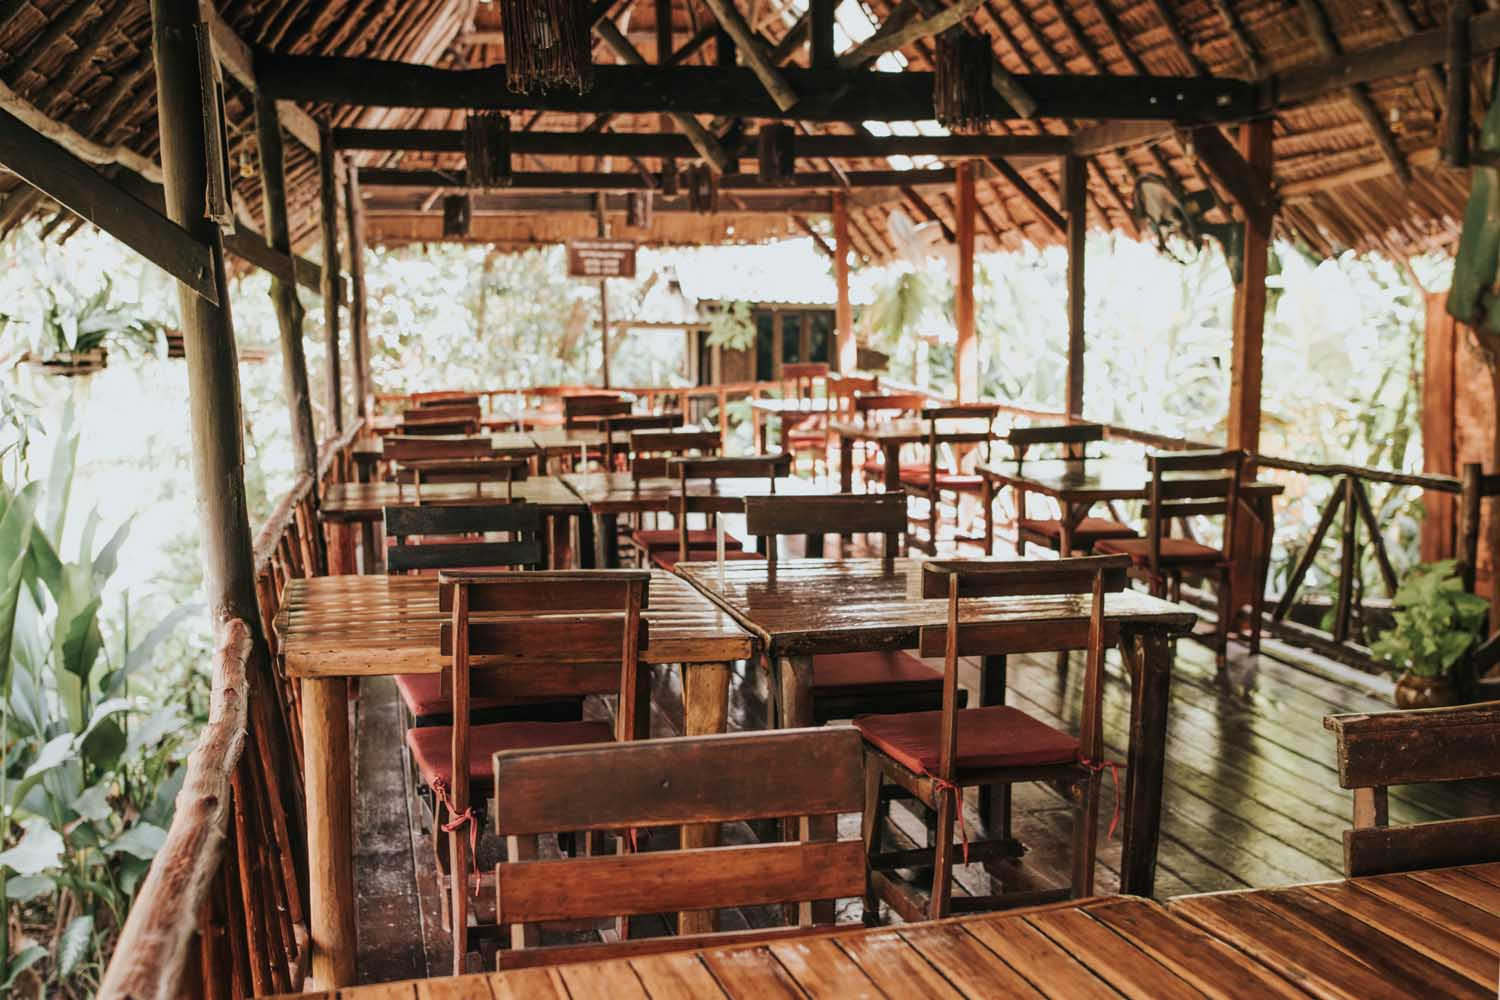 khao sok with children - Family friendly restaurant